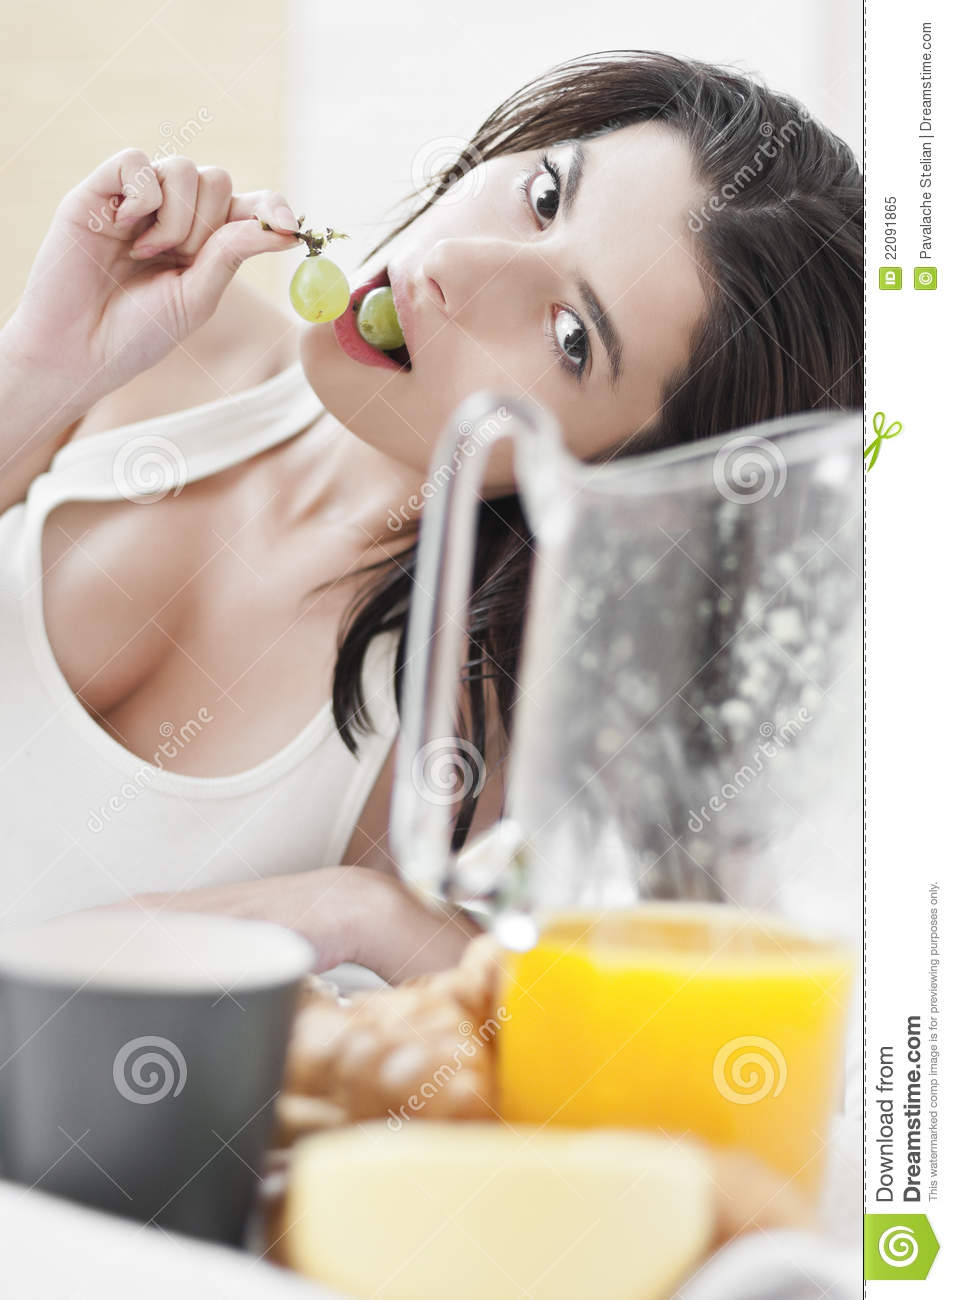 Woman Eating Grapes On Breakfast Stock Image - Image of ...